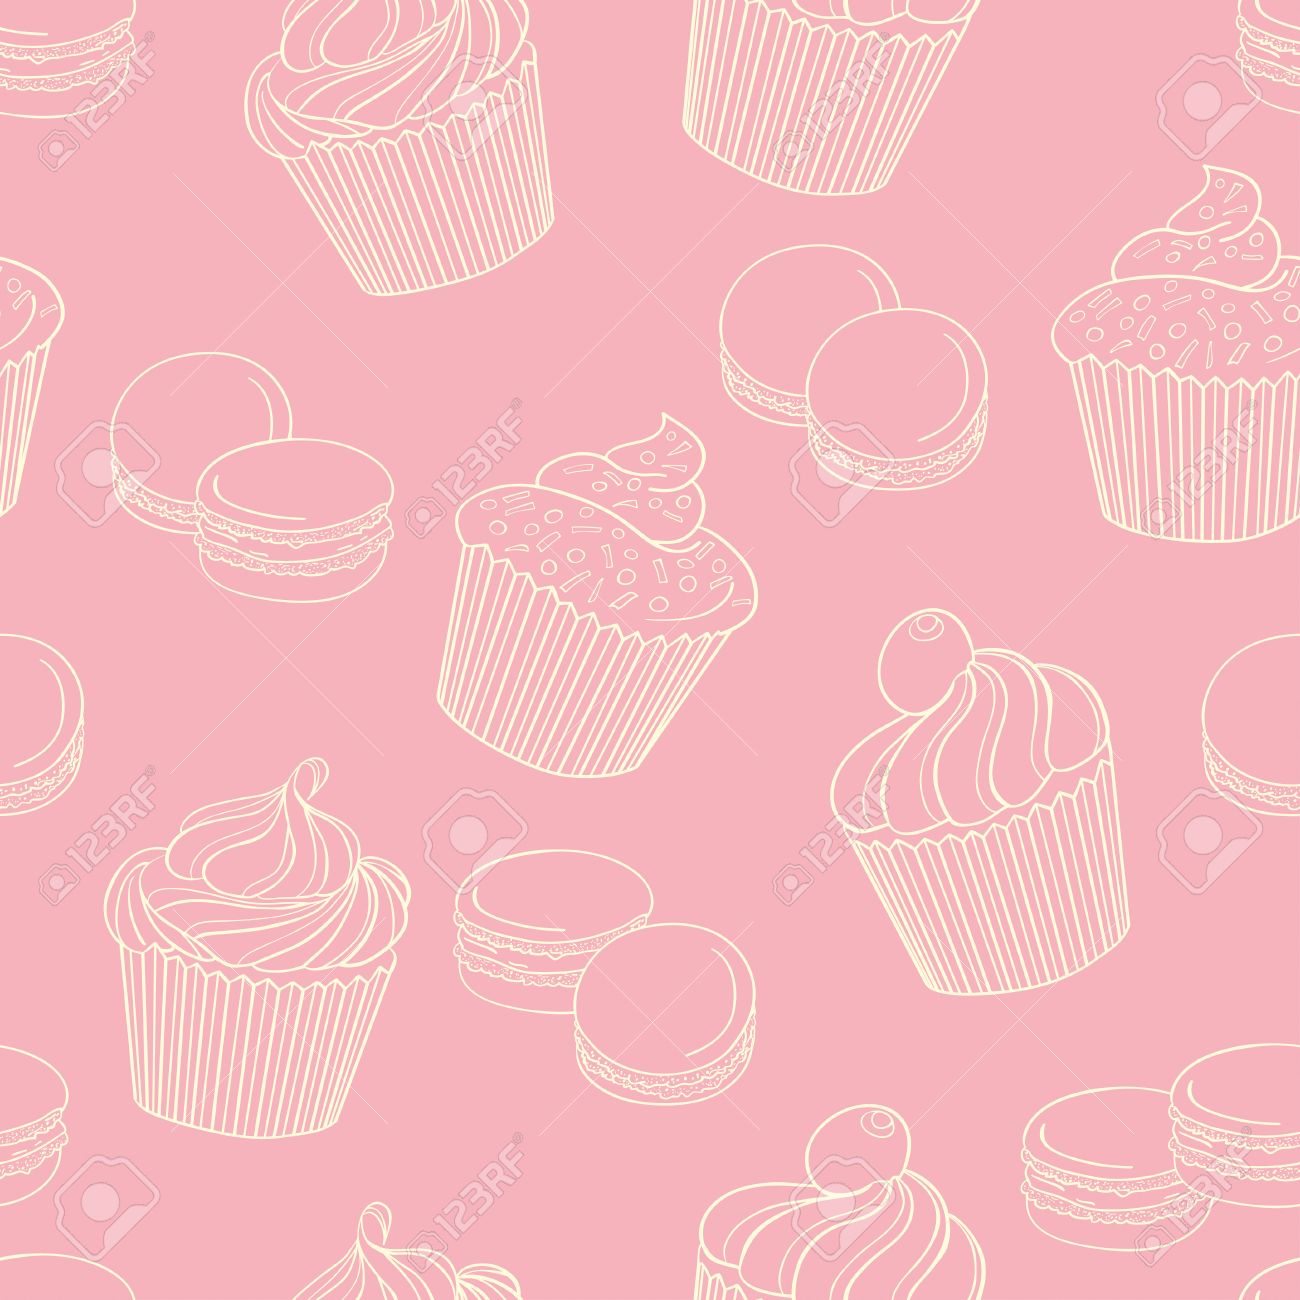 Delicious cupcakes with macaroons on pink background, seamless pattern. Can be used for wallpaper